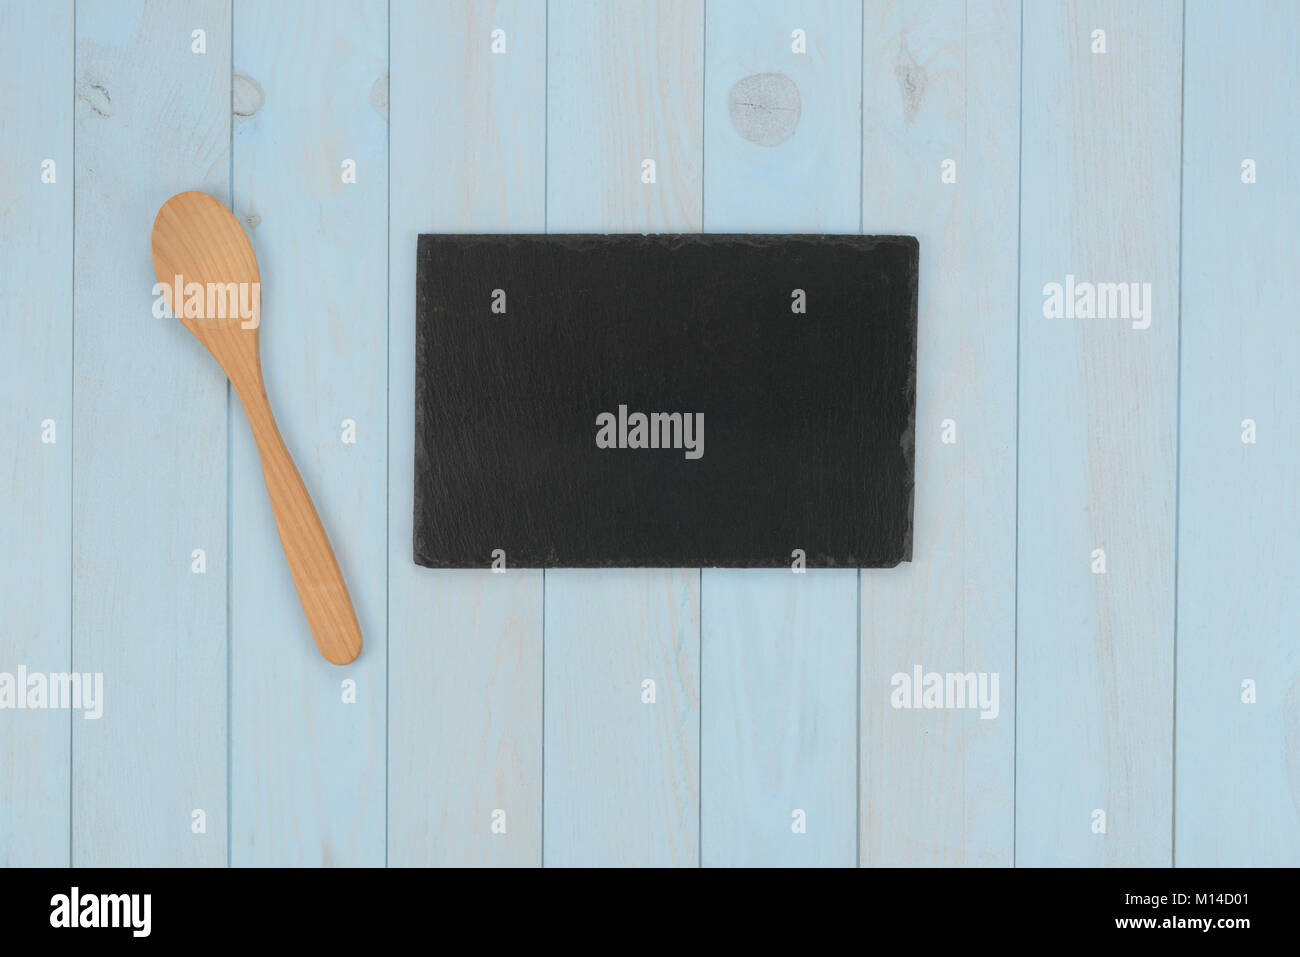 kitchen items wooden spoon and black stone plate on blue wooden